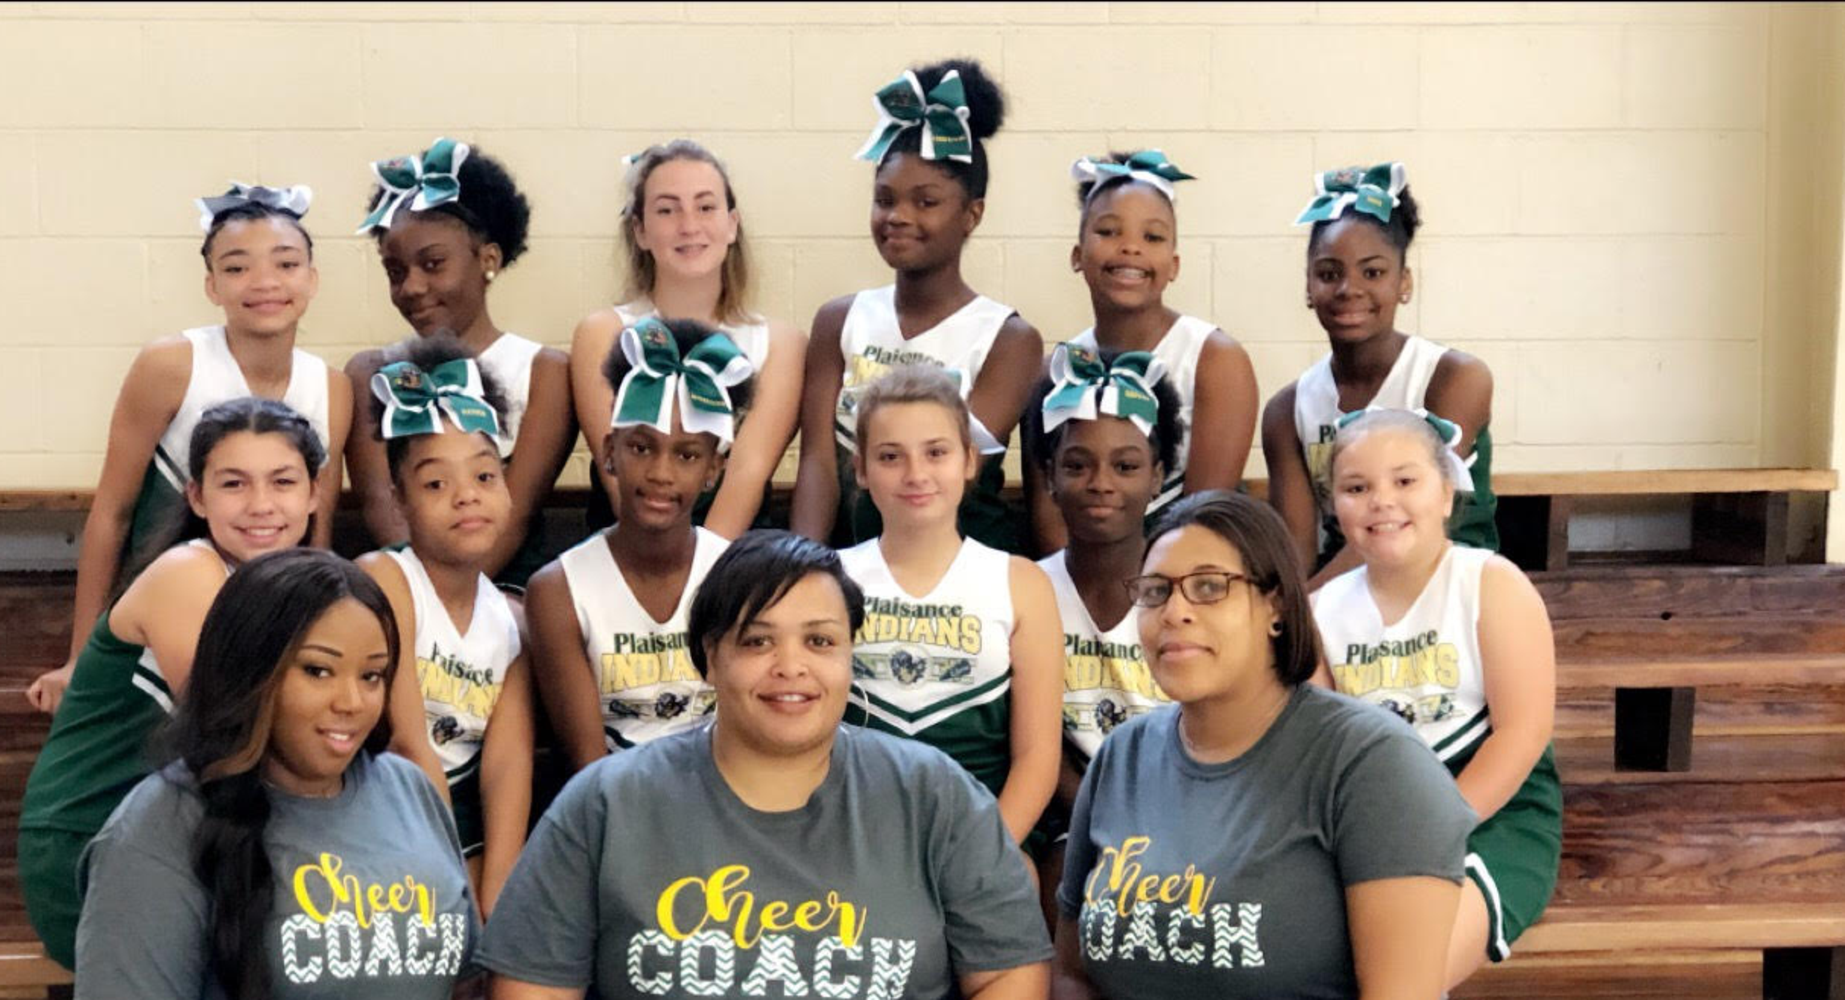 Plaisance Middle School 2019-2020 Cheerleaders and Coaches! Go Indians